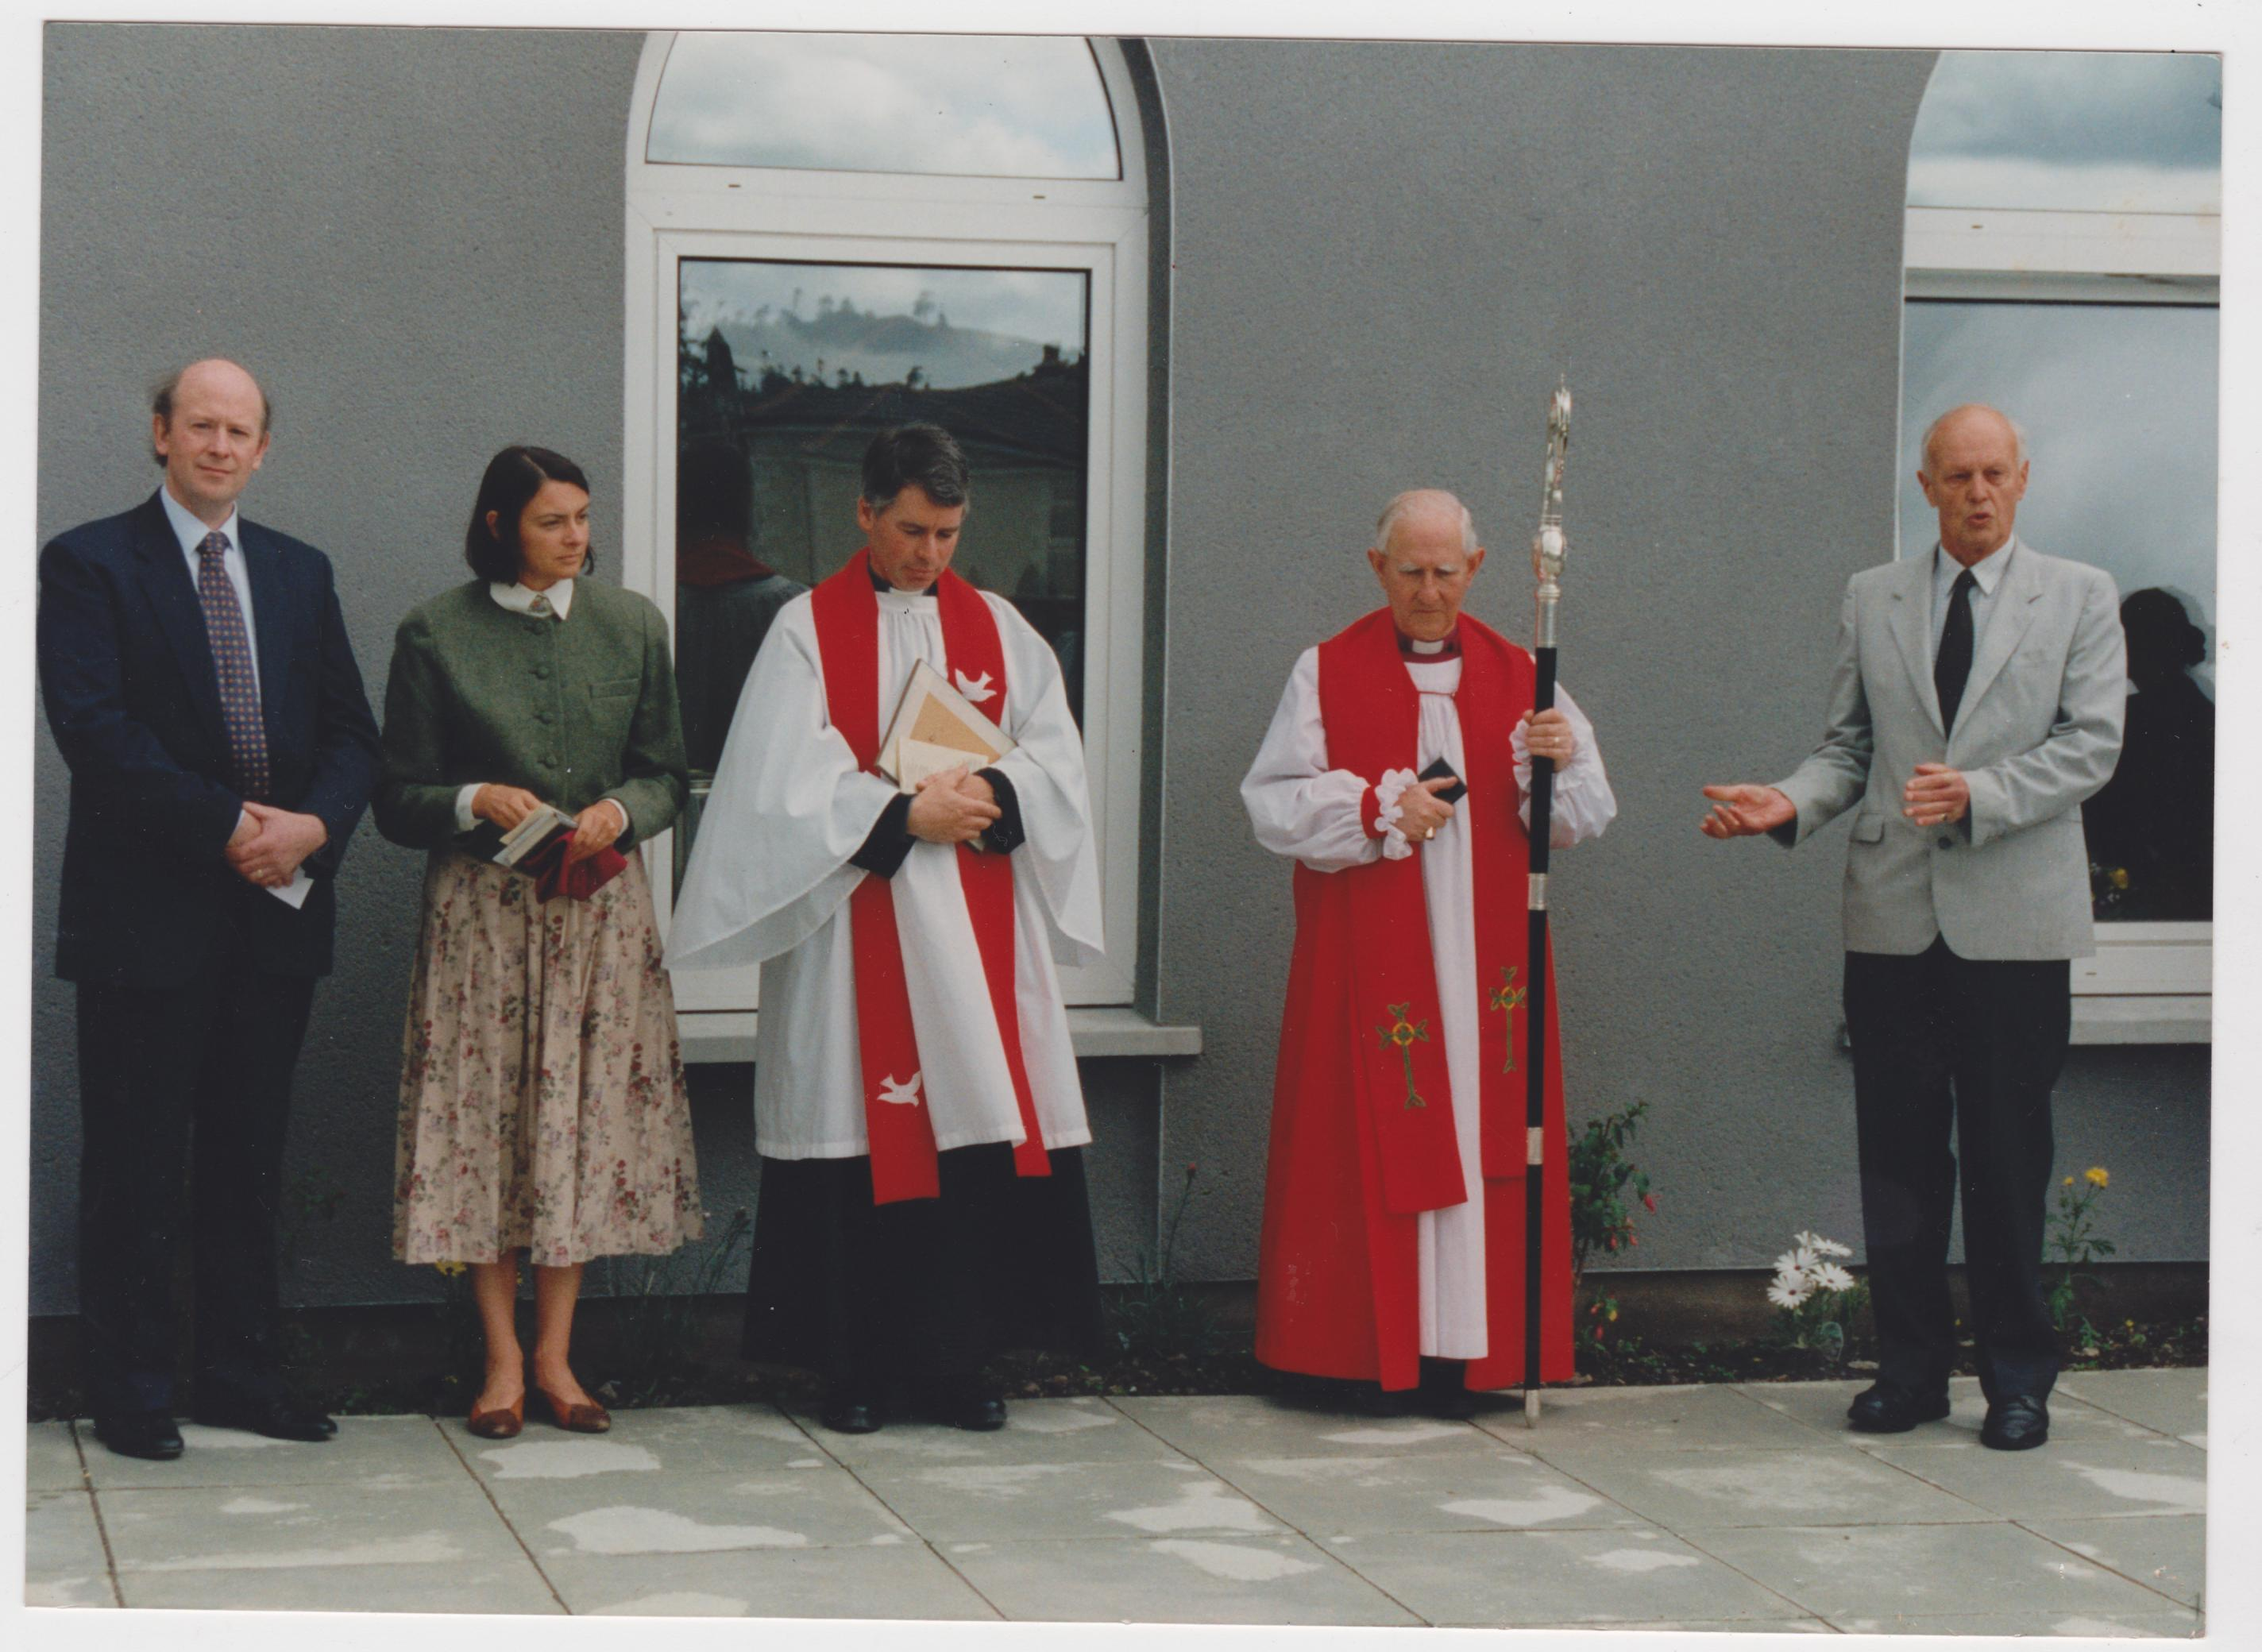 Carrigaline Church Hall Opening, 4th June, 1995